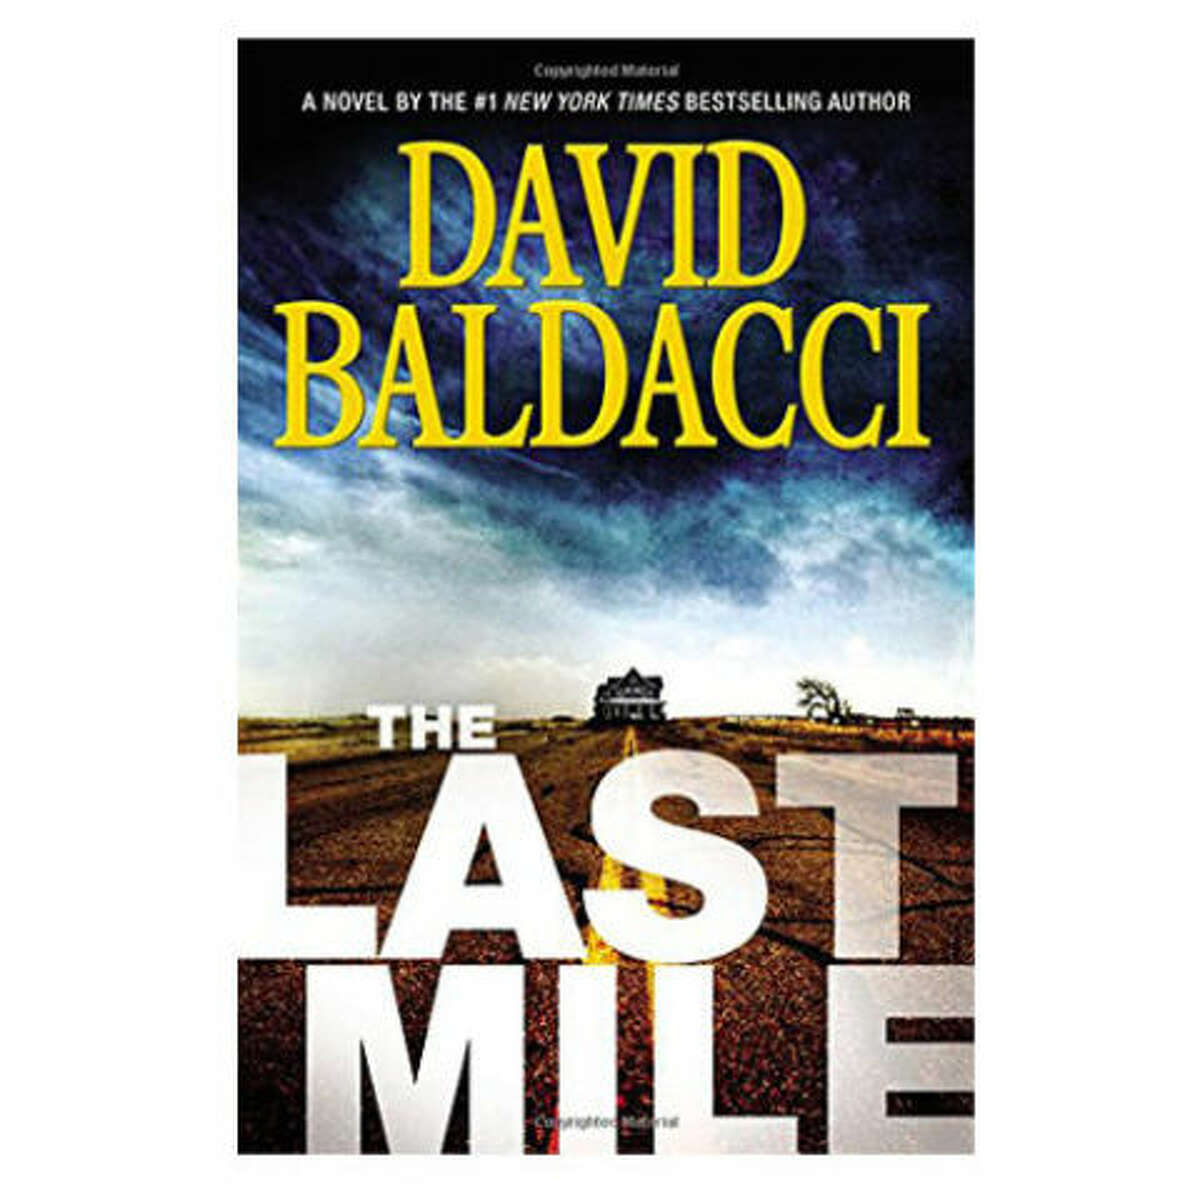 These were the top 15 most popular fiction books at Albany Public Library in 2016: 1) The Last Mile by David Baldacci